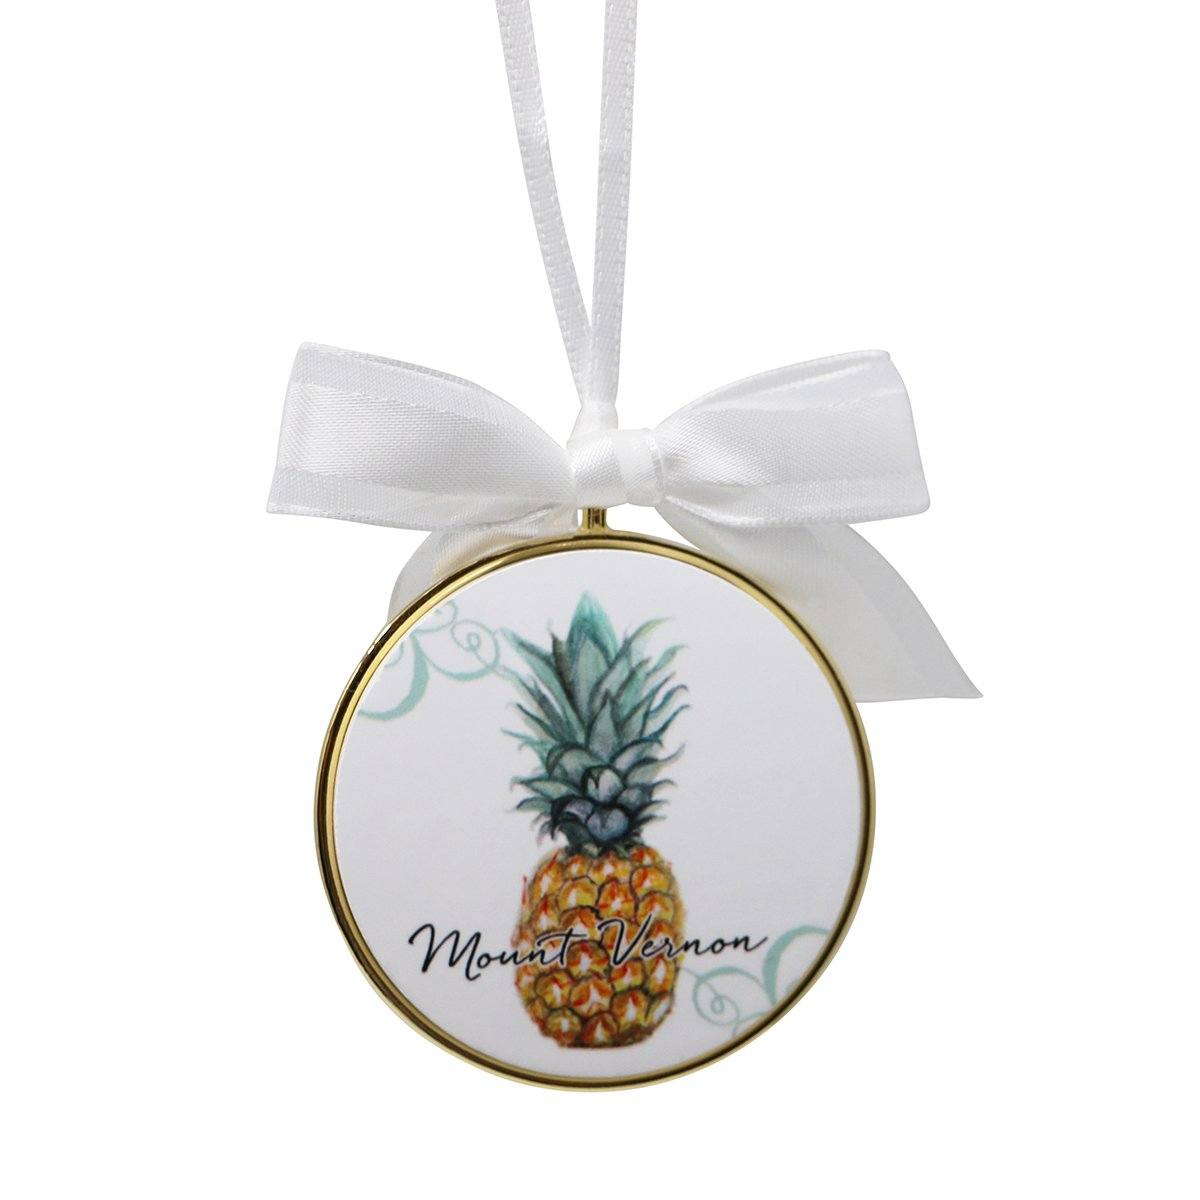 Mount Vernon Pineapple Ornament